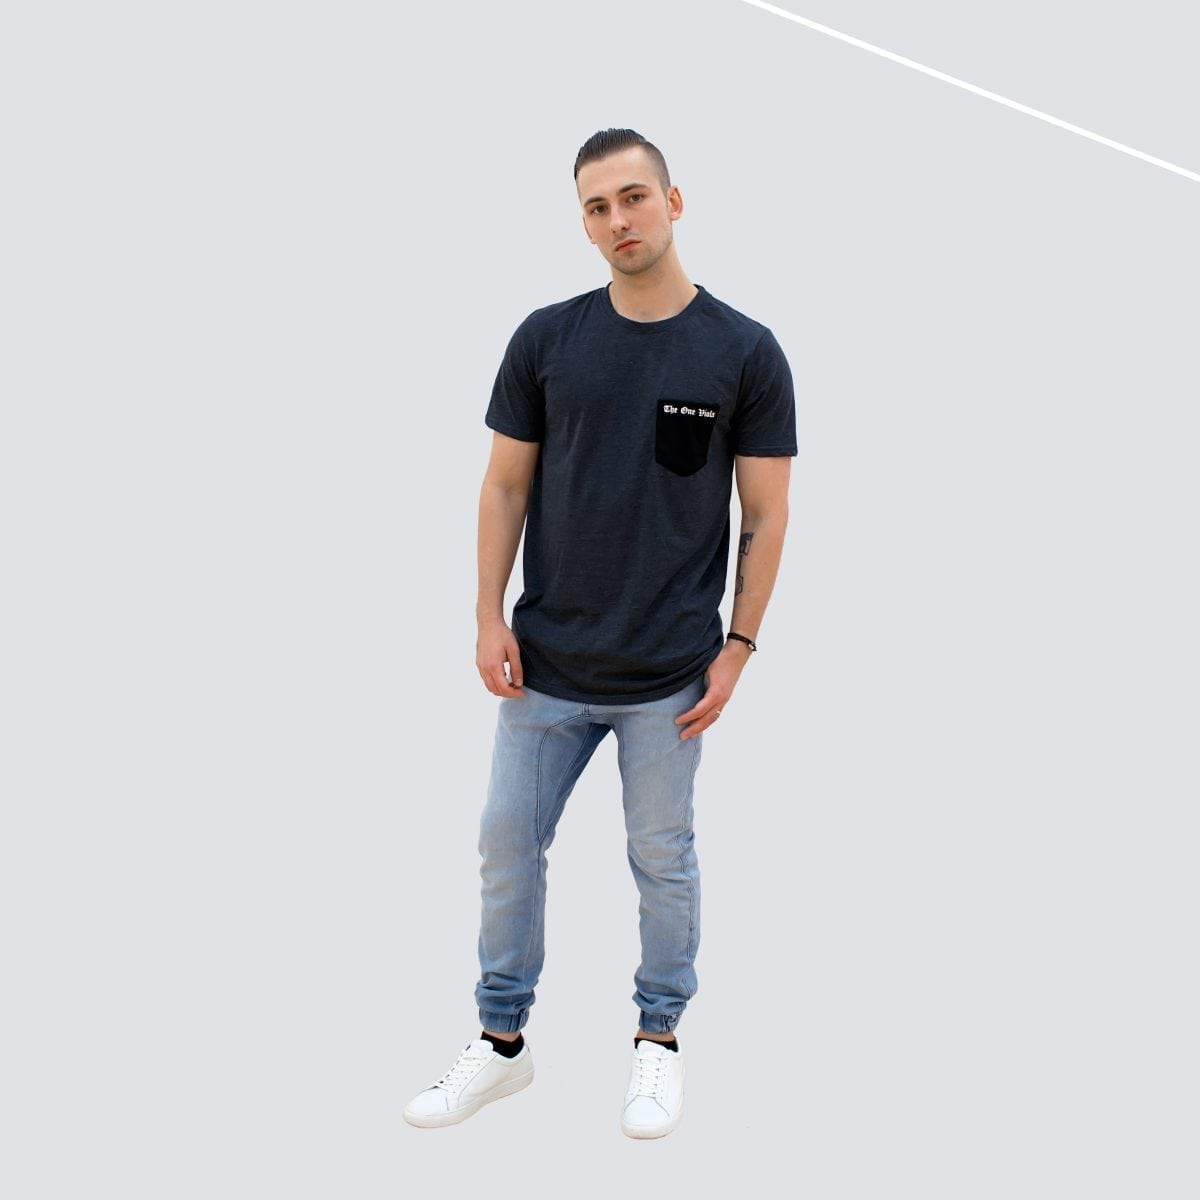 man wearing pocket tee